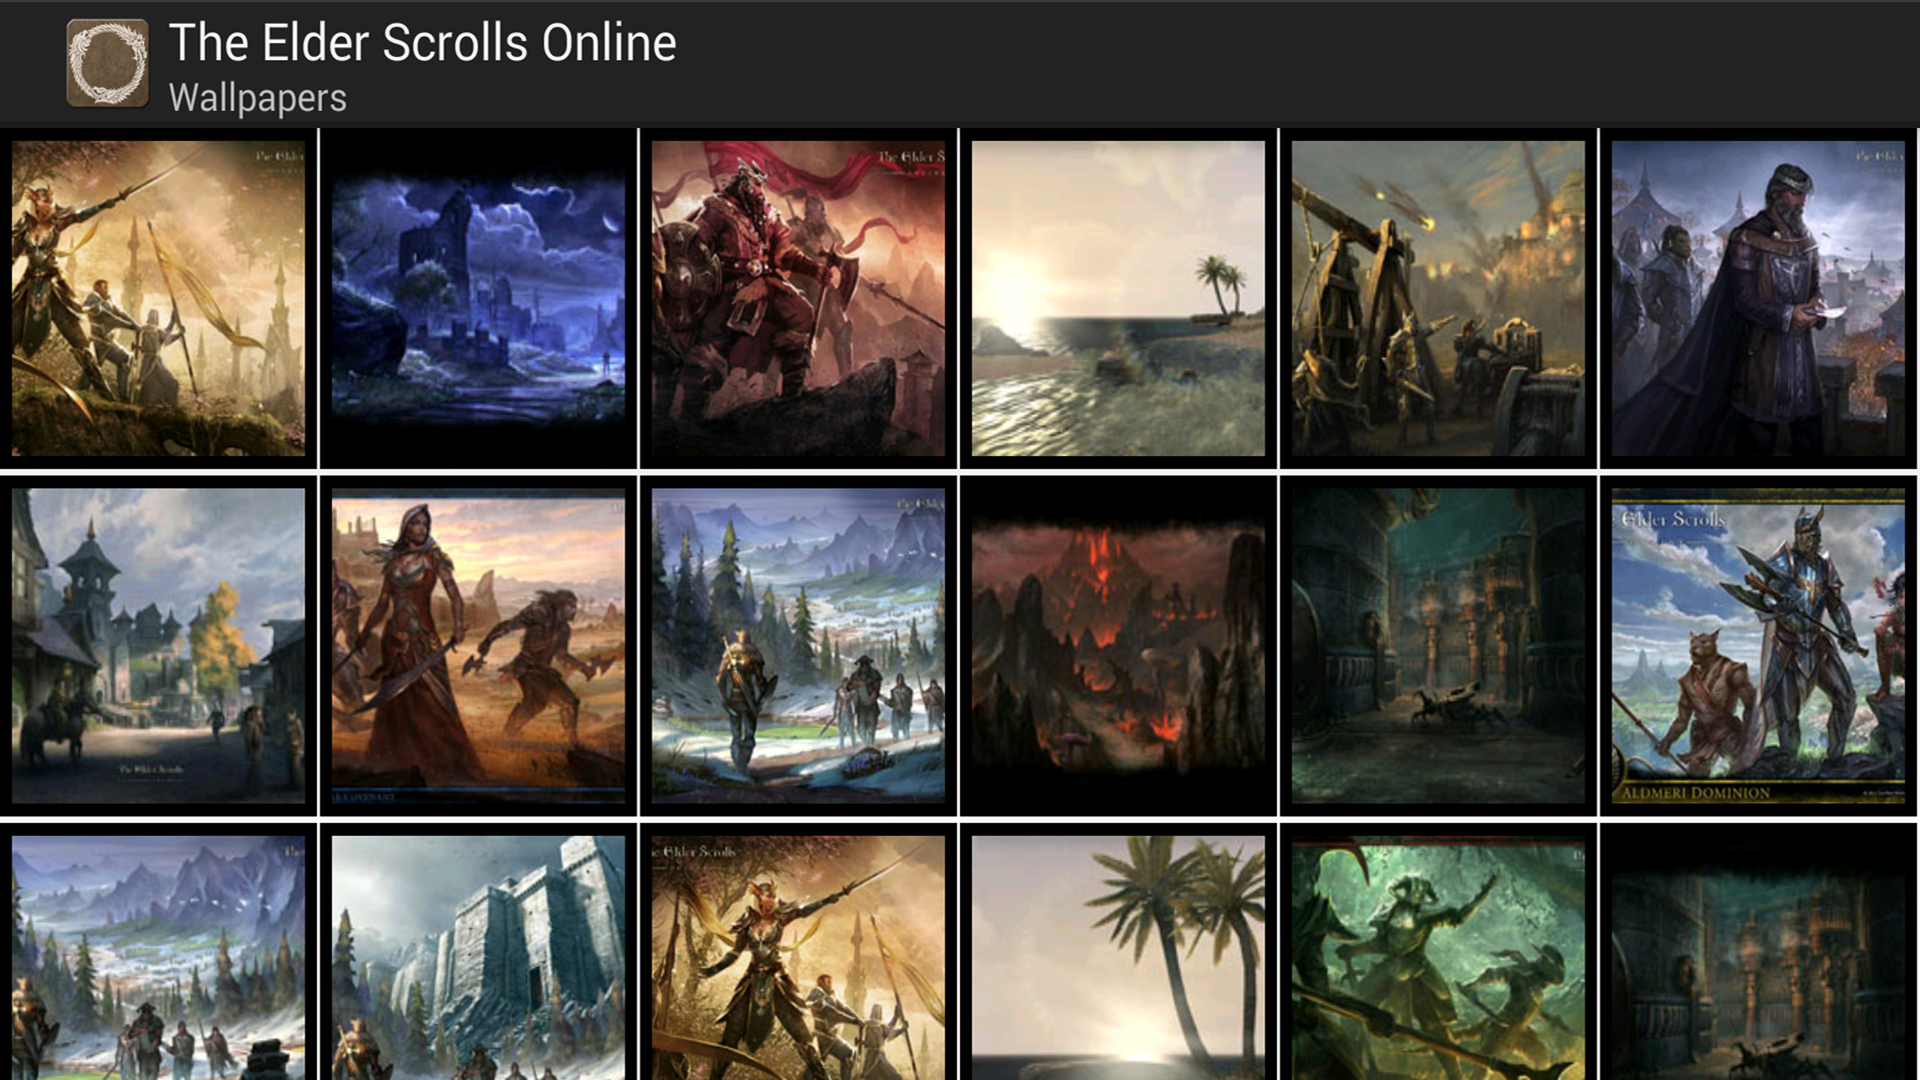 Eso Hd Wallpapers Amazones Appstore Para Android